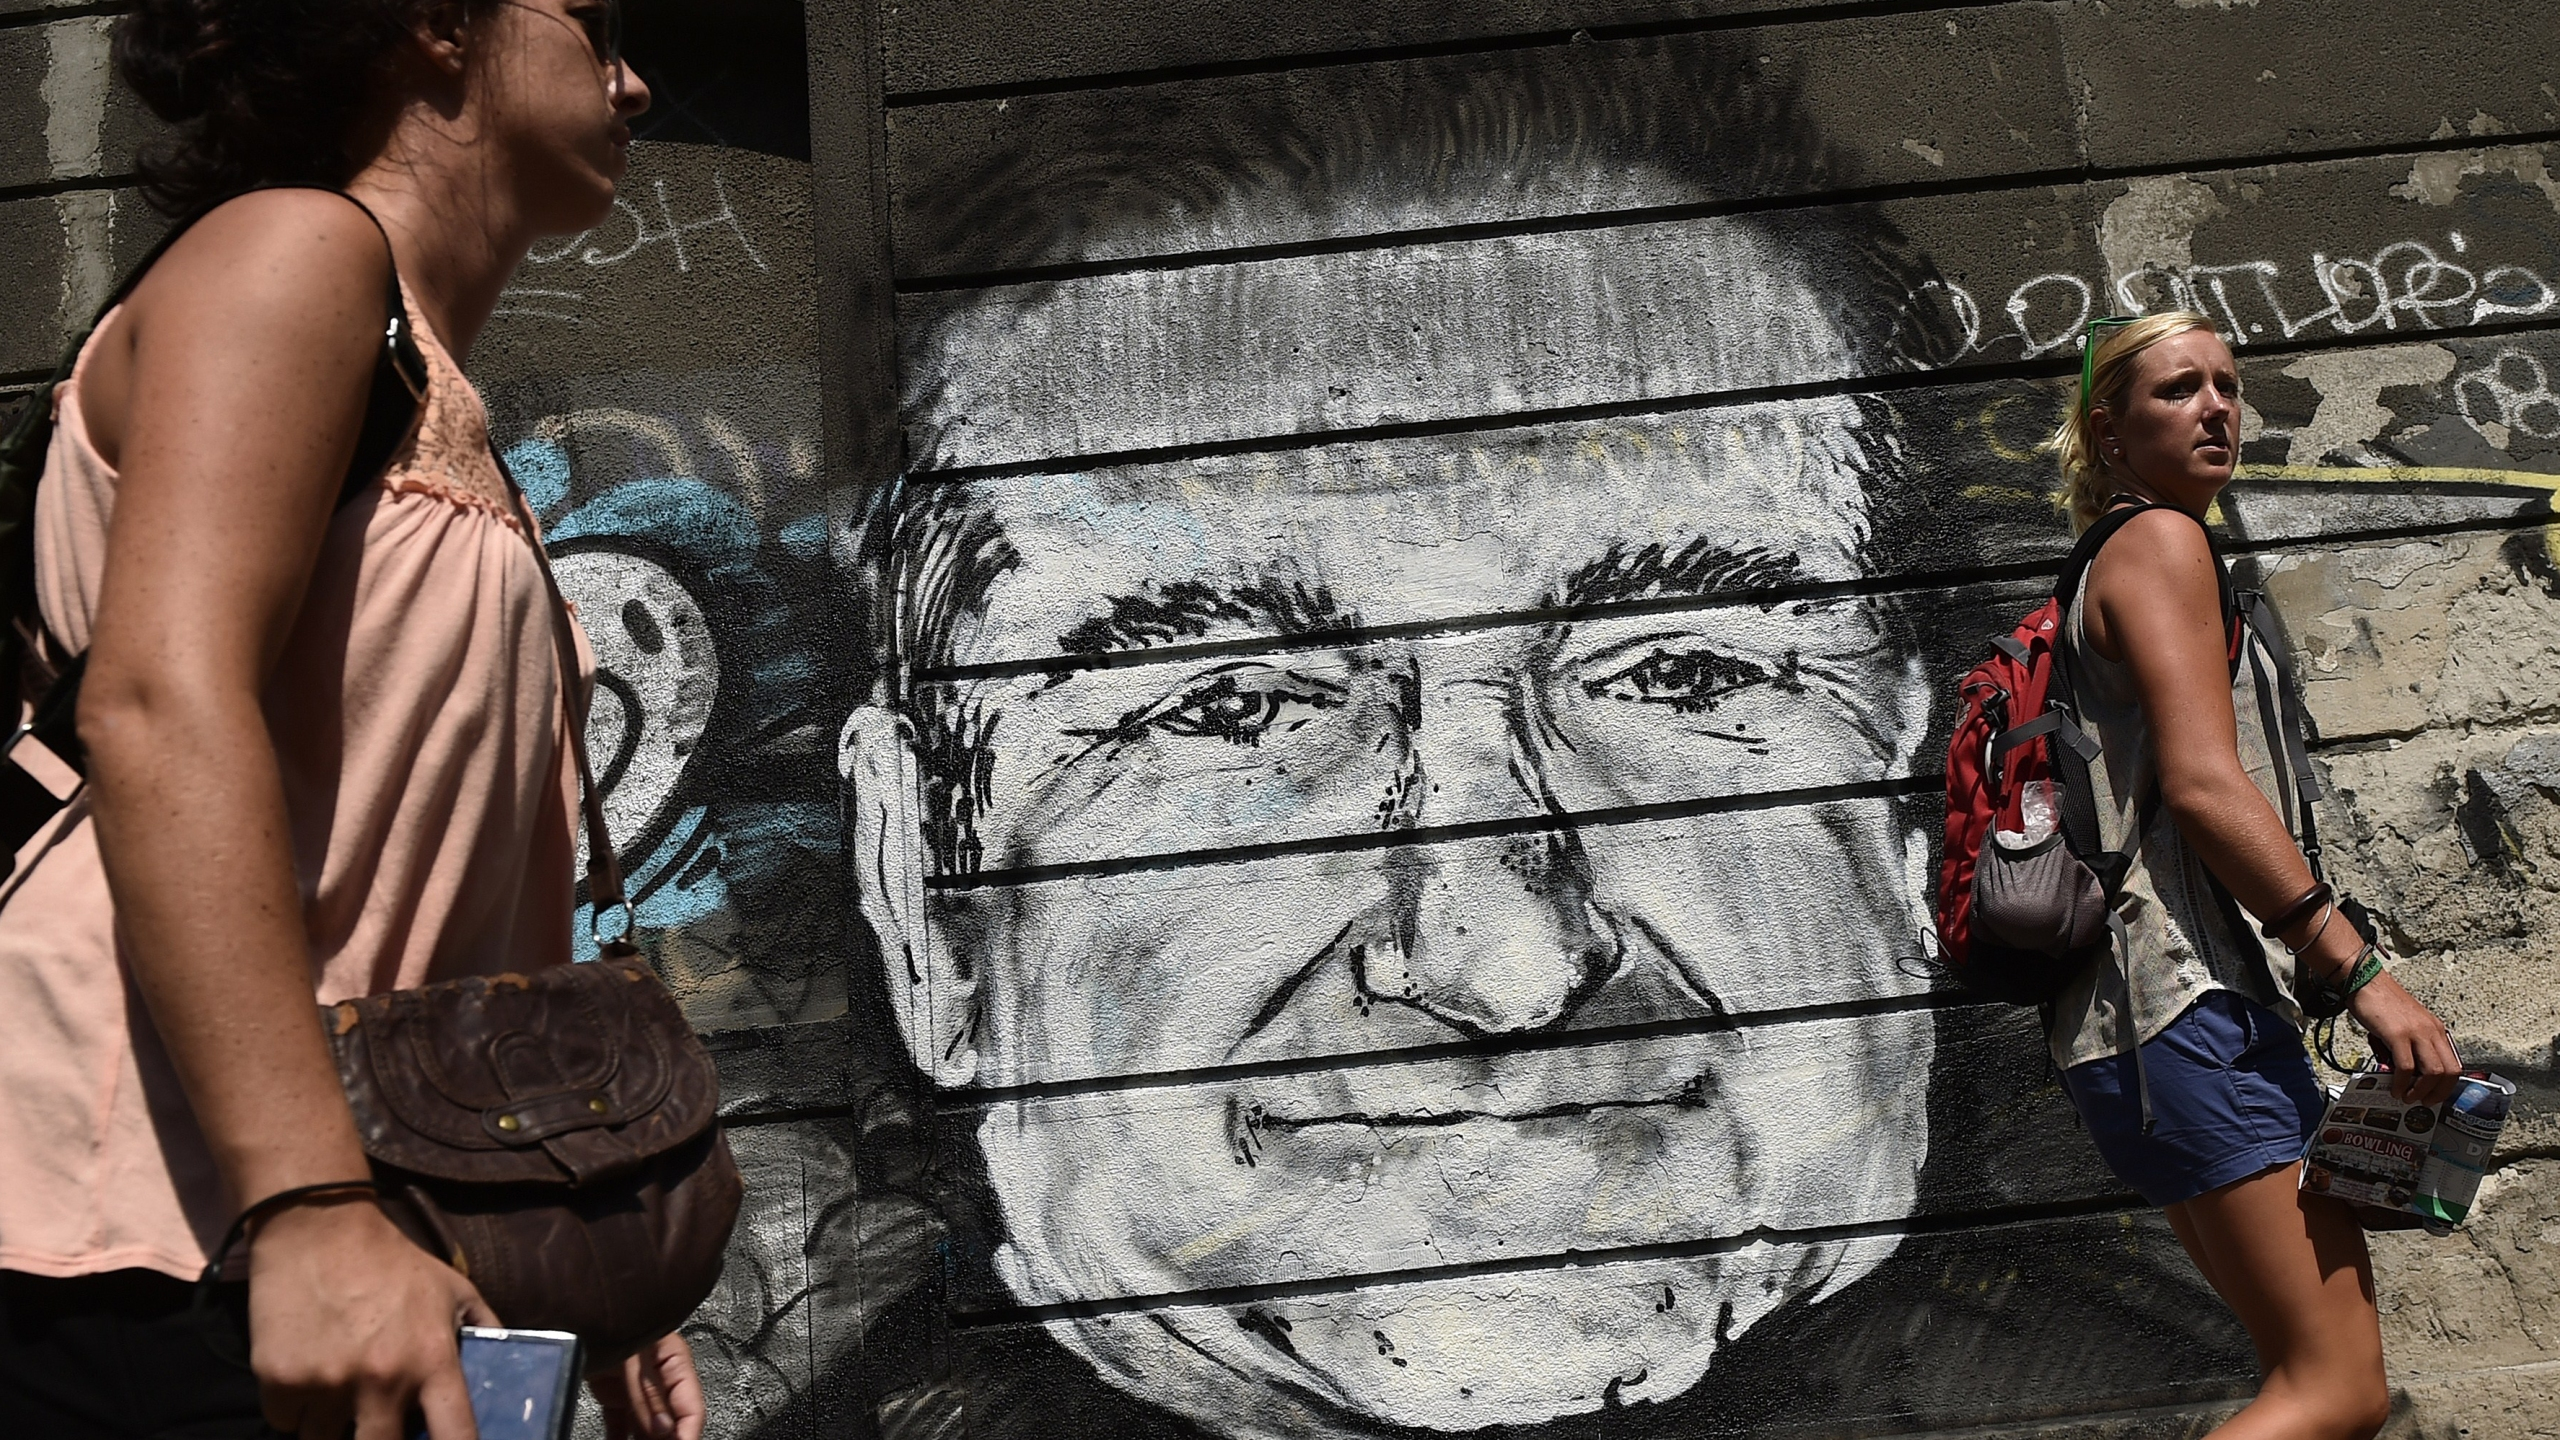 People walk past a mural depicting actor Robin Williams in downtown Belgrade on Aug. 13, 2014. (Credit: ANDREJ ISAKOVIC/AFP/Getty Images)